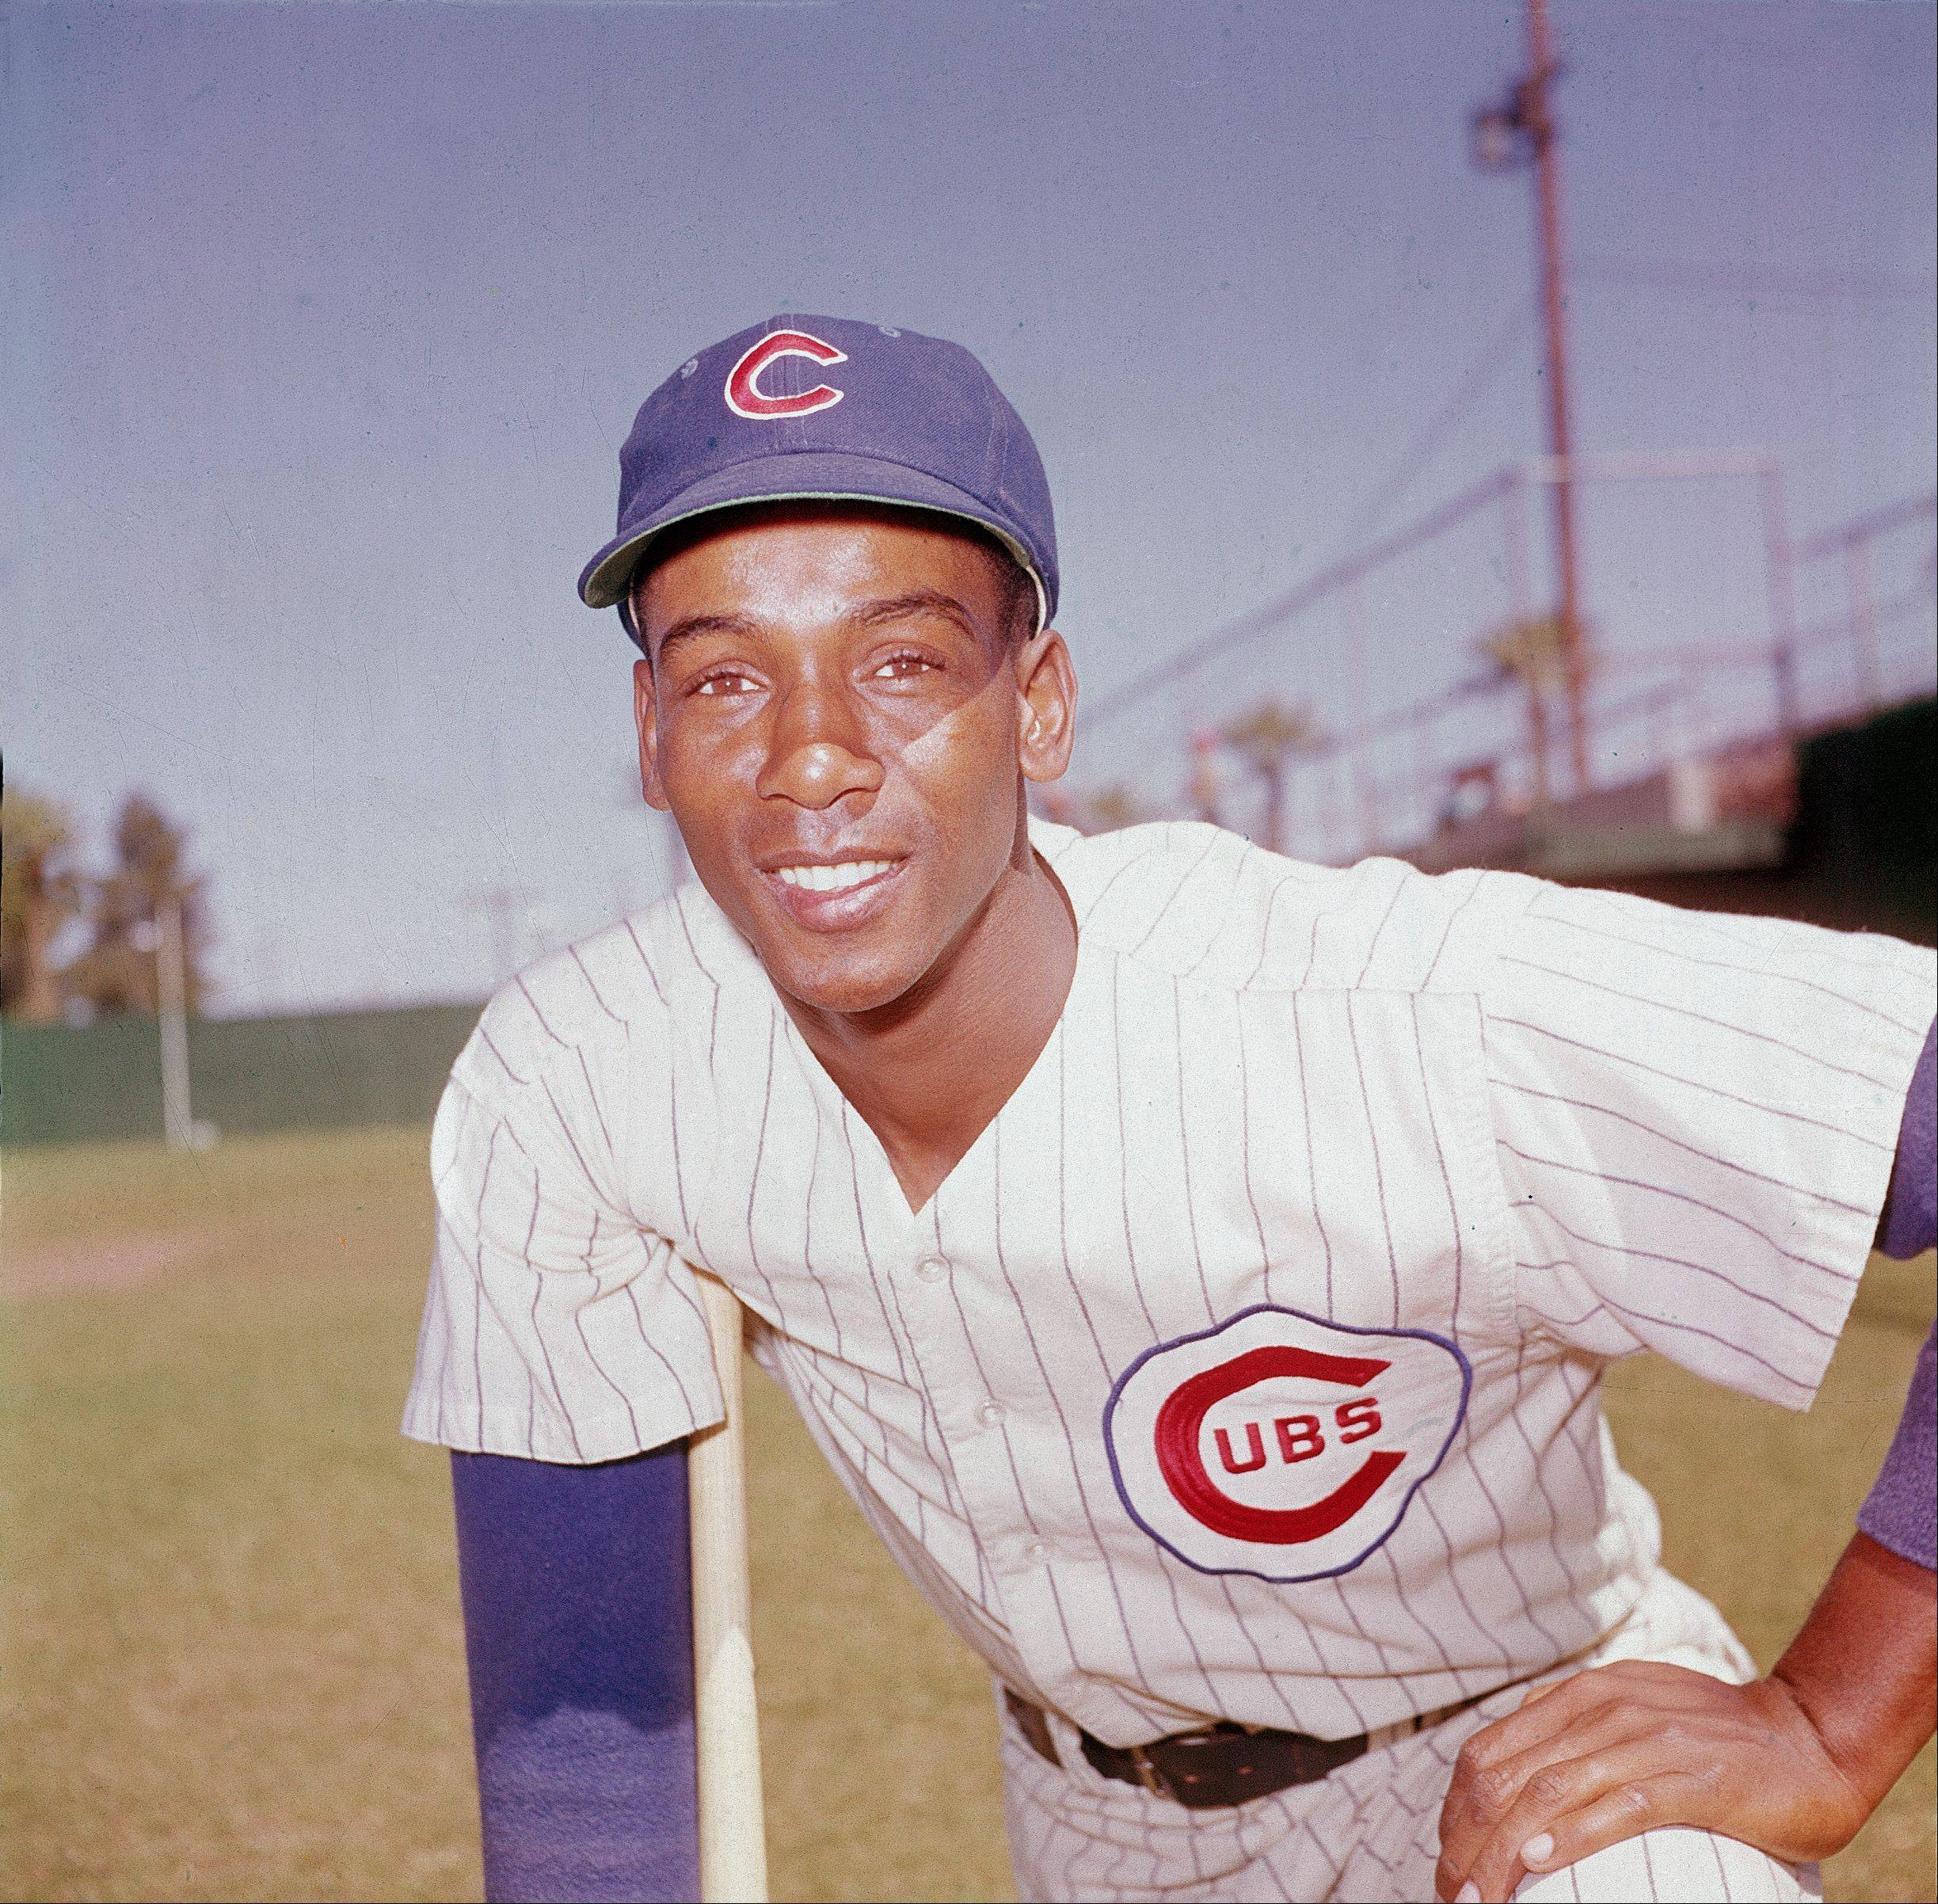 Mike North's #4: Ernie Banks